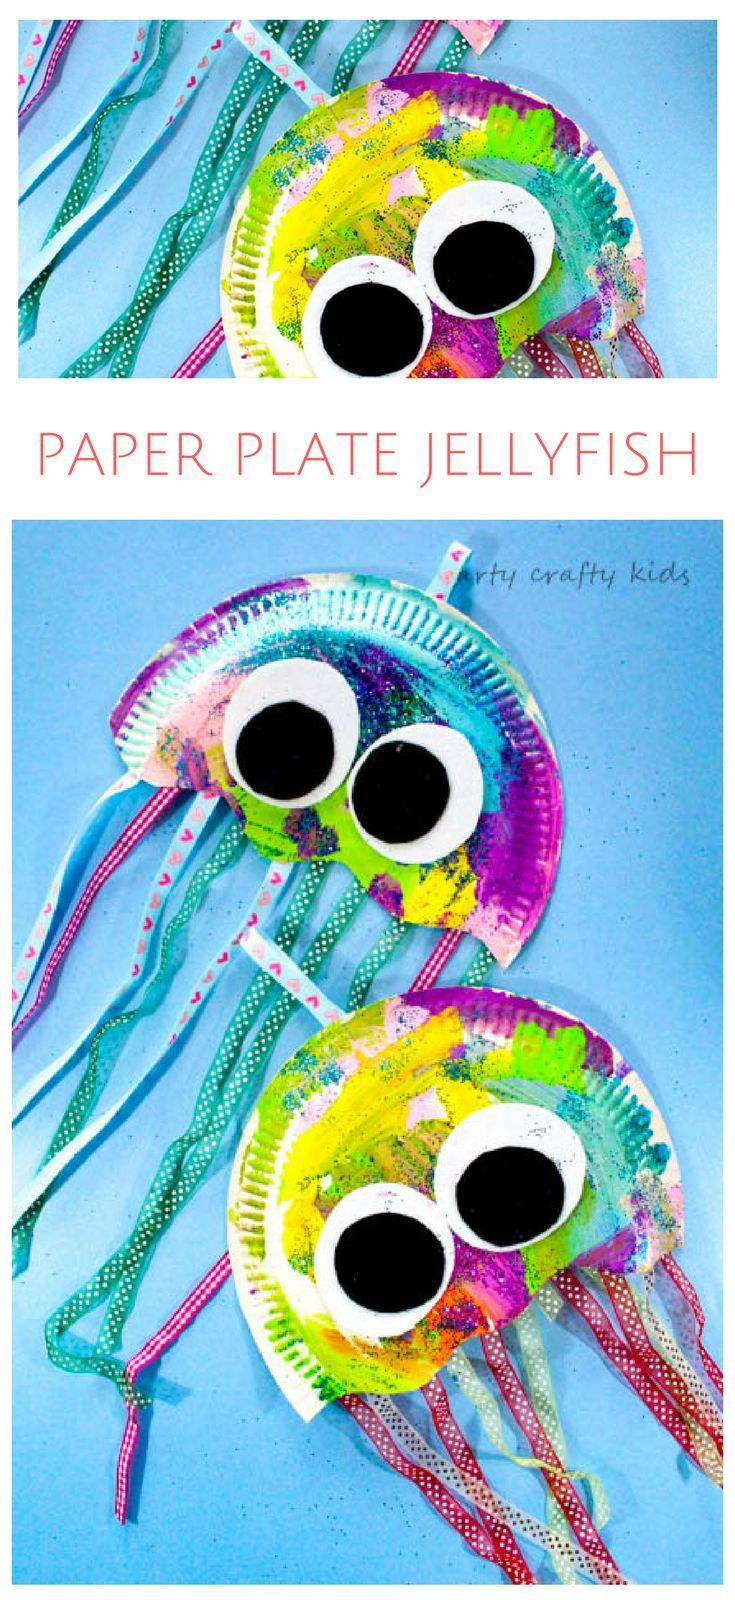 Arty Crafty Kids | Craft | Paper Plate Jellyfish Craft | Easy Jellyfish craft fo... - http://www.oroscopointernazionaleblog.com/arty-crafty-kids-craft-paper-plate-jellyfish-craft-easy-jellyfish-craft-fo/